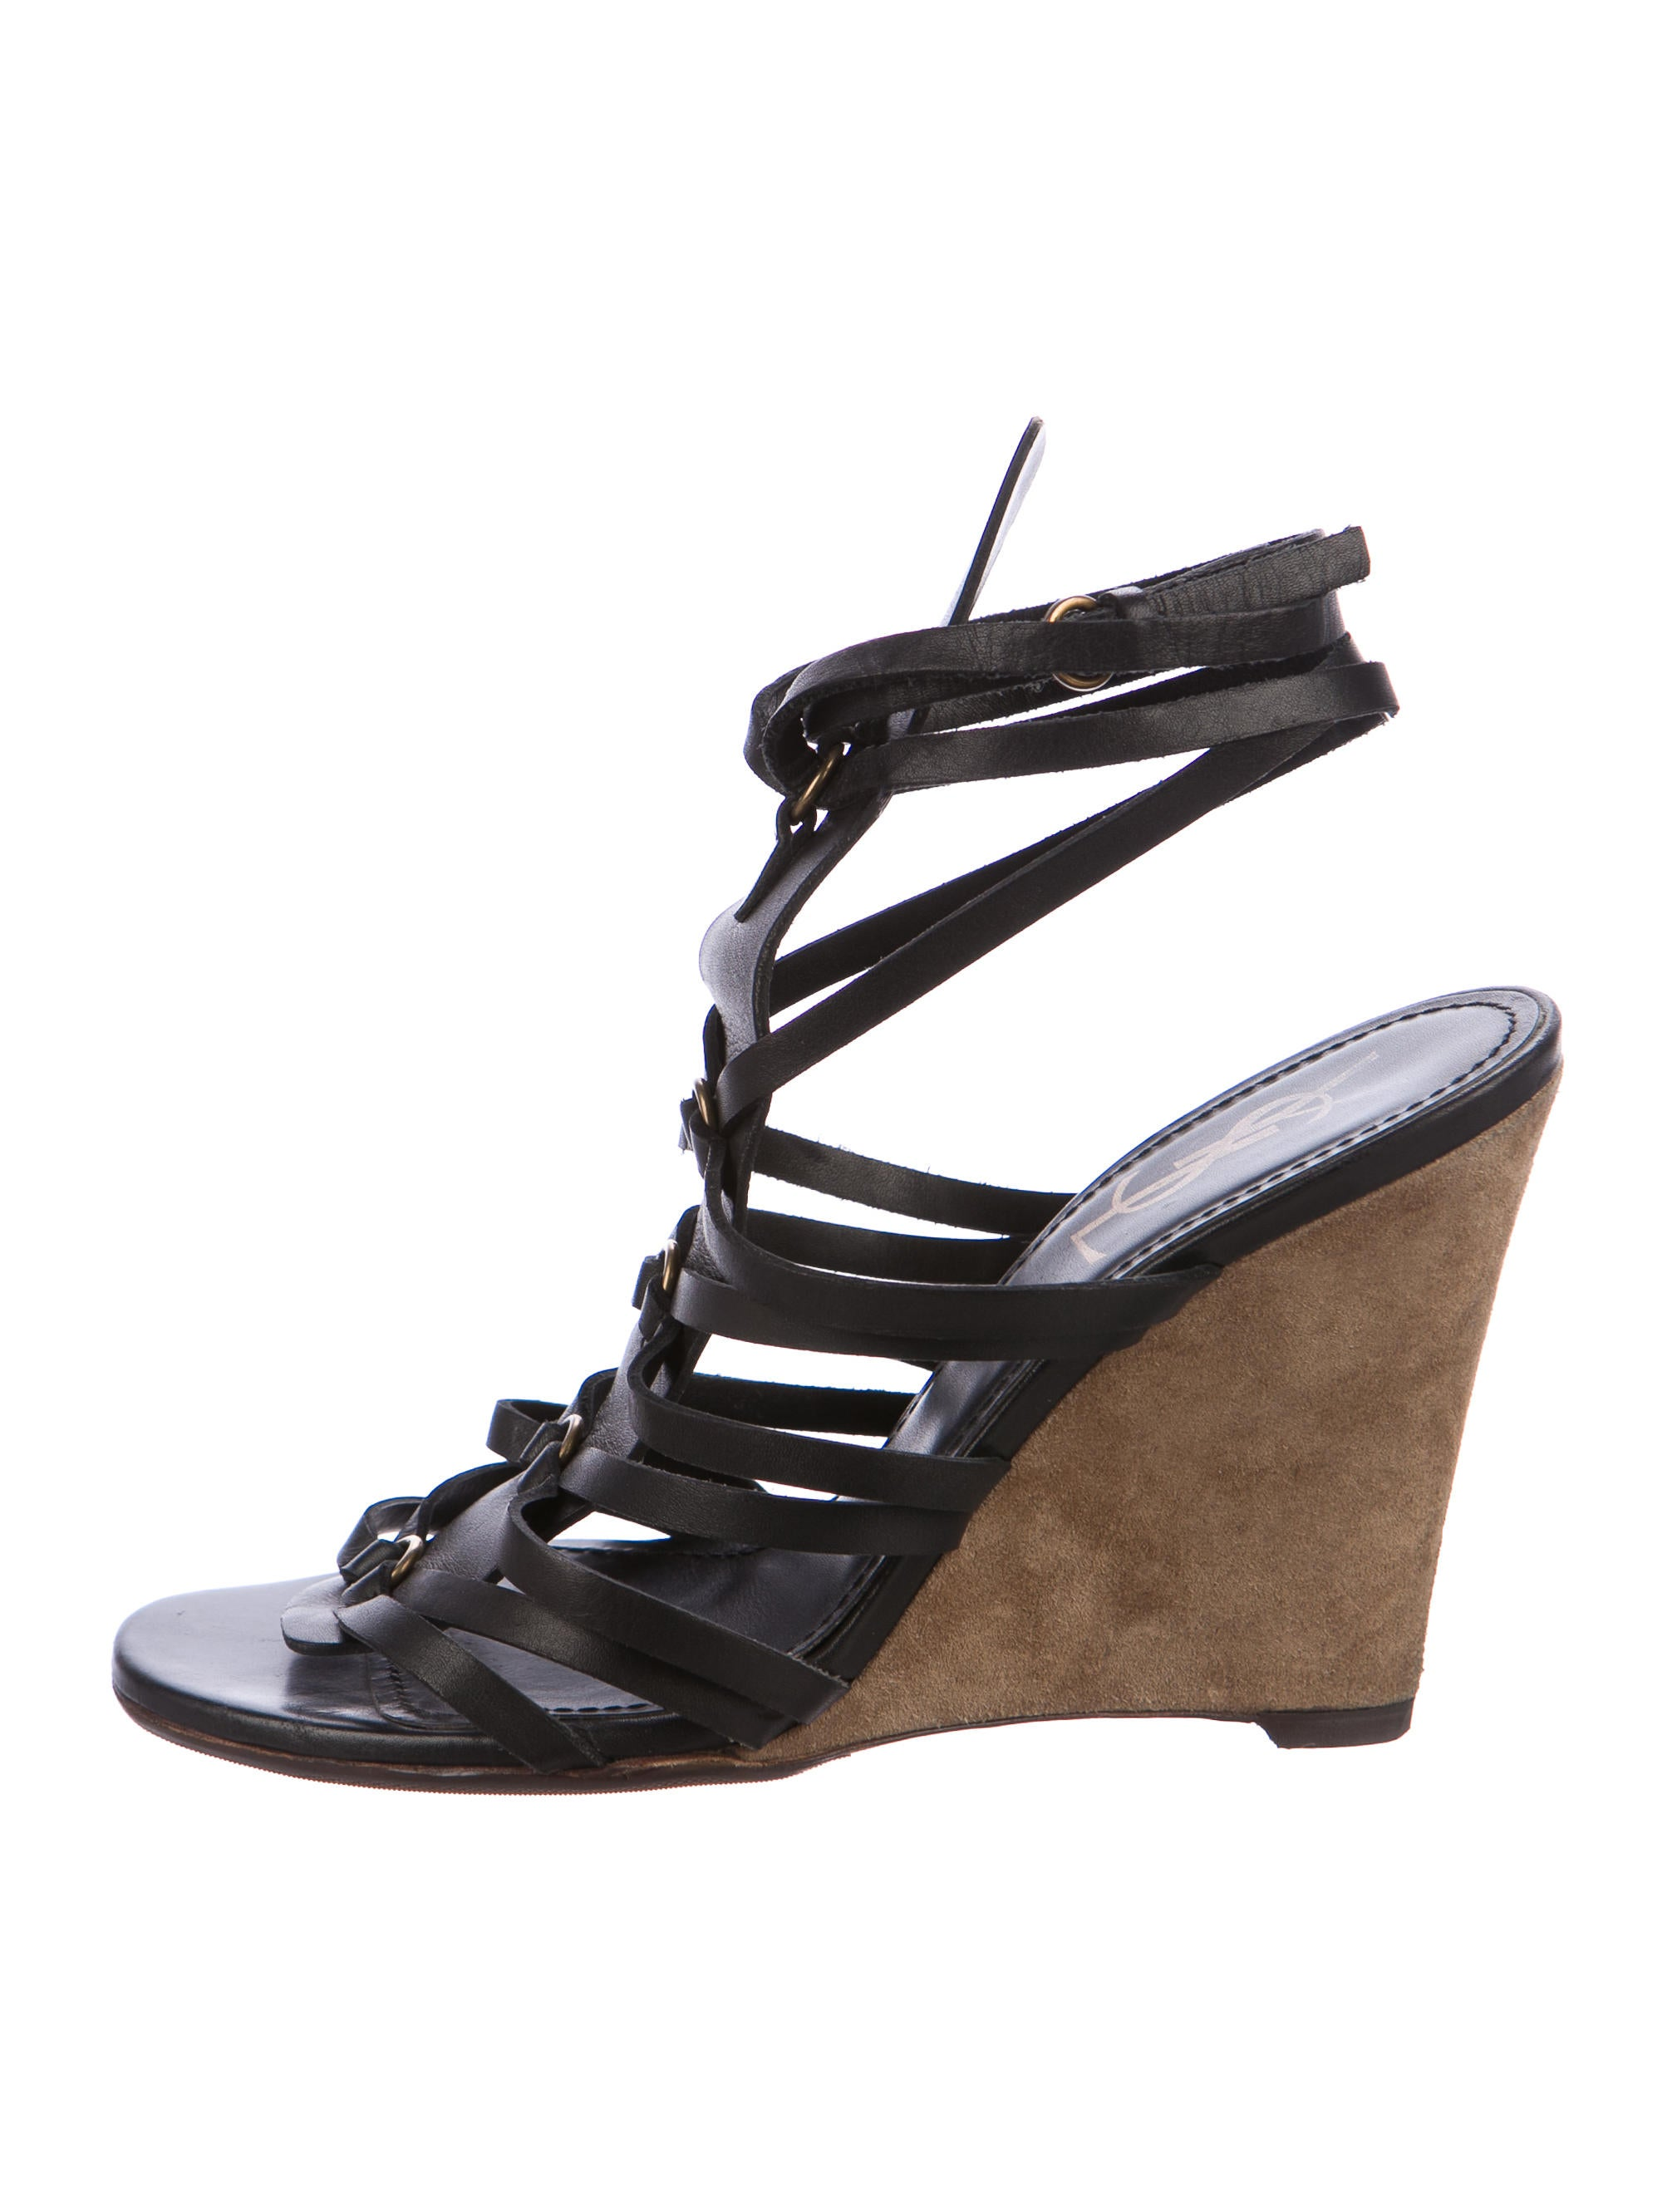 Yves Saint Laurent Leather Caged Wedges - Shoes - YVE72756  020d6d6ad9